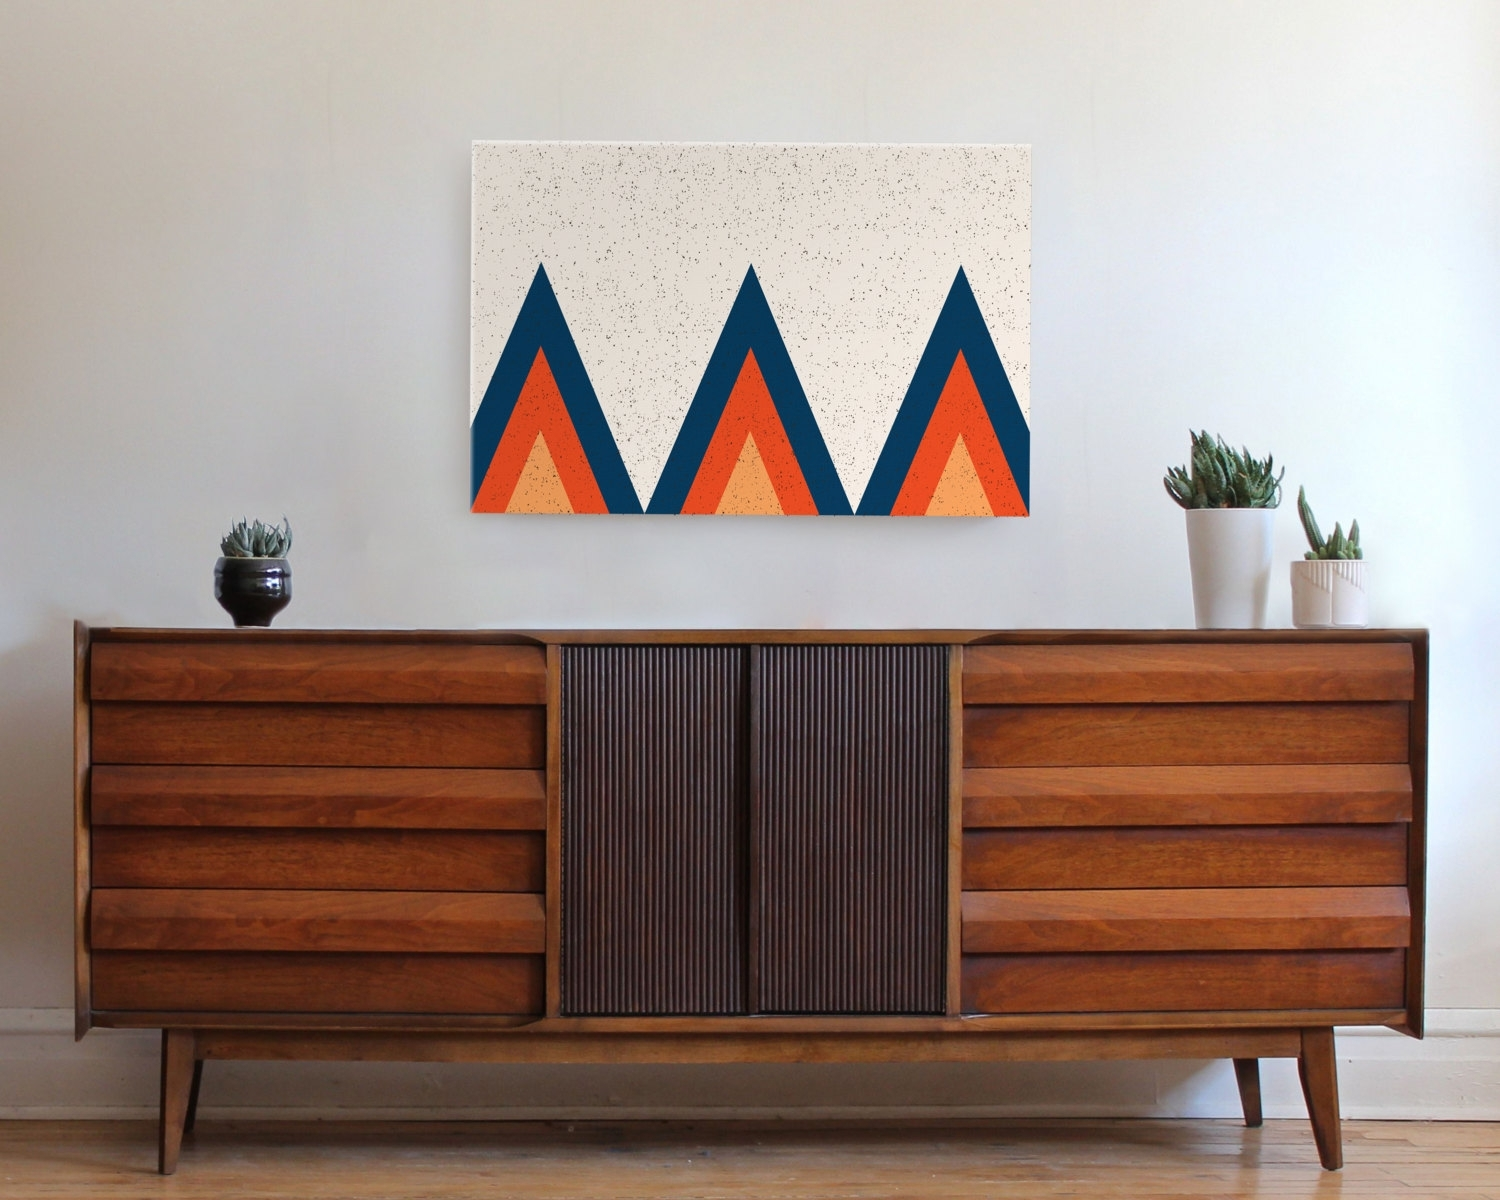 Best Mid Century Modern Wall Art : Andrews Living Arts – Photo With Regard To Mid Century Wall Art (View 2 of 20)